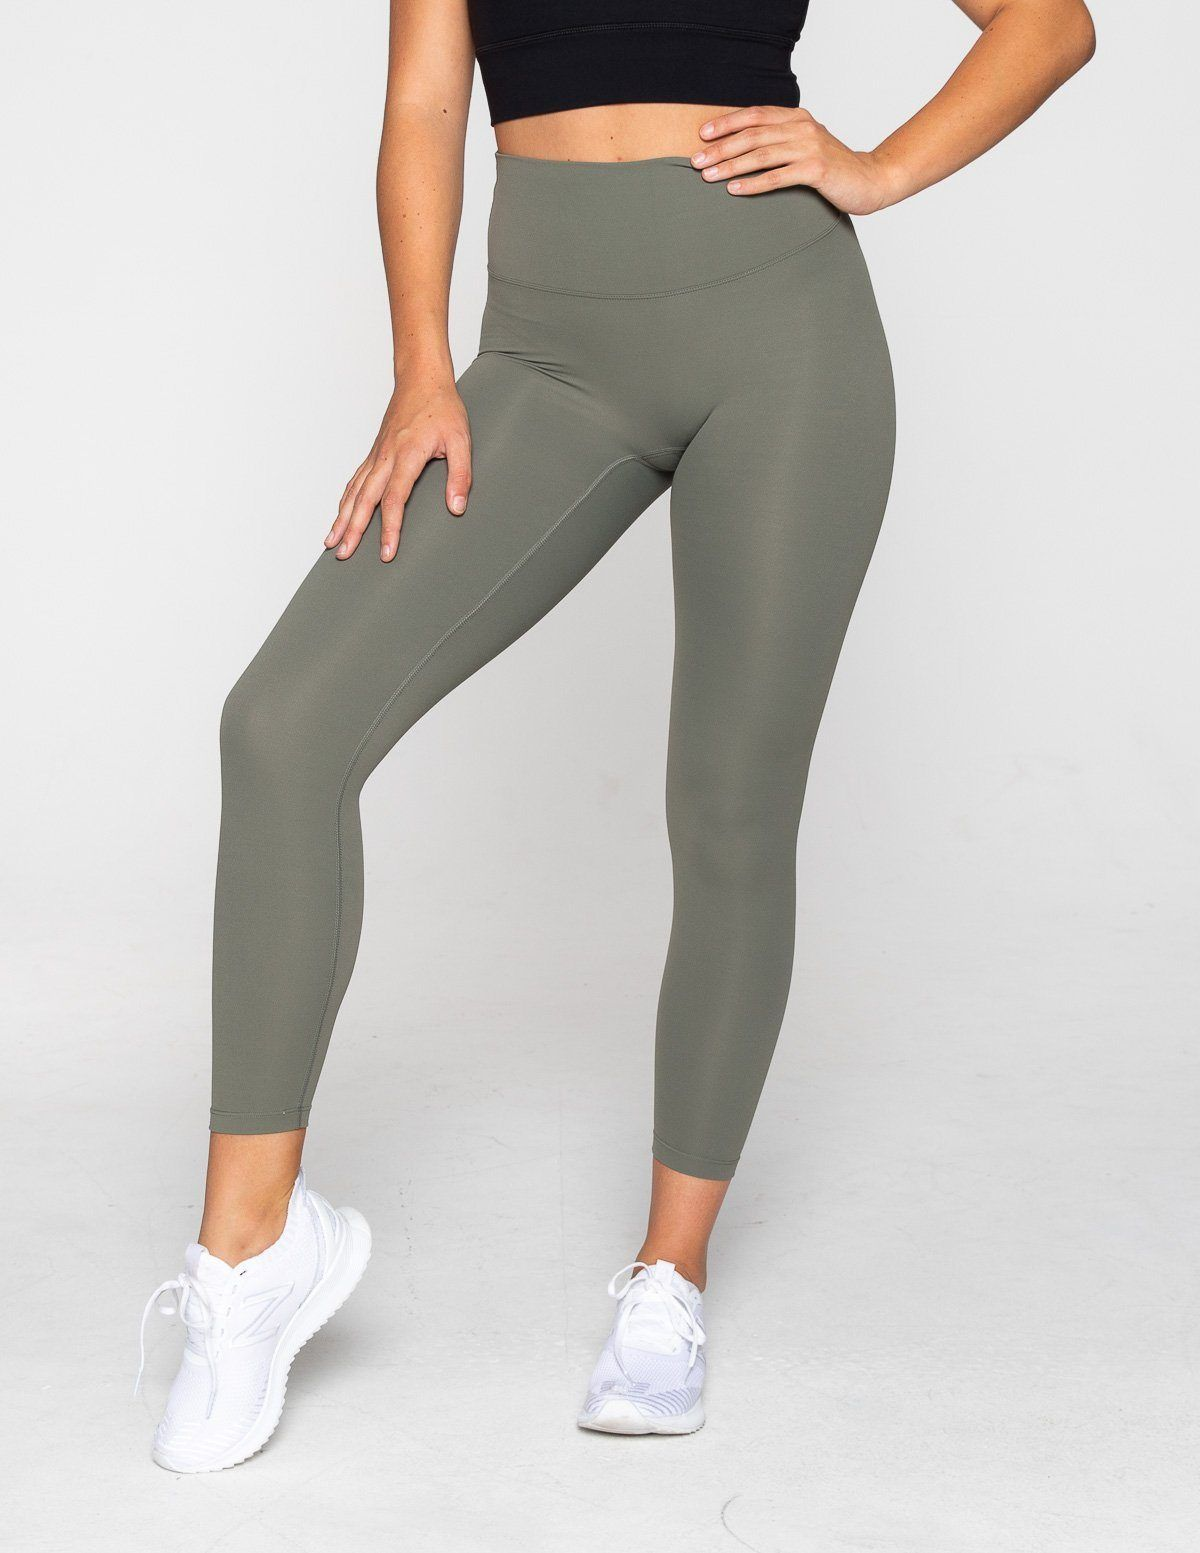 Muscle Republic Luxe 7/8 Legging-Olive